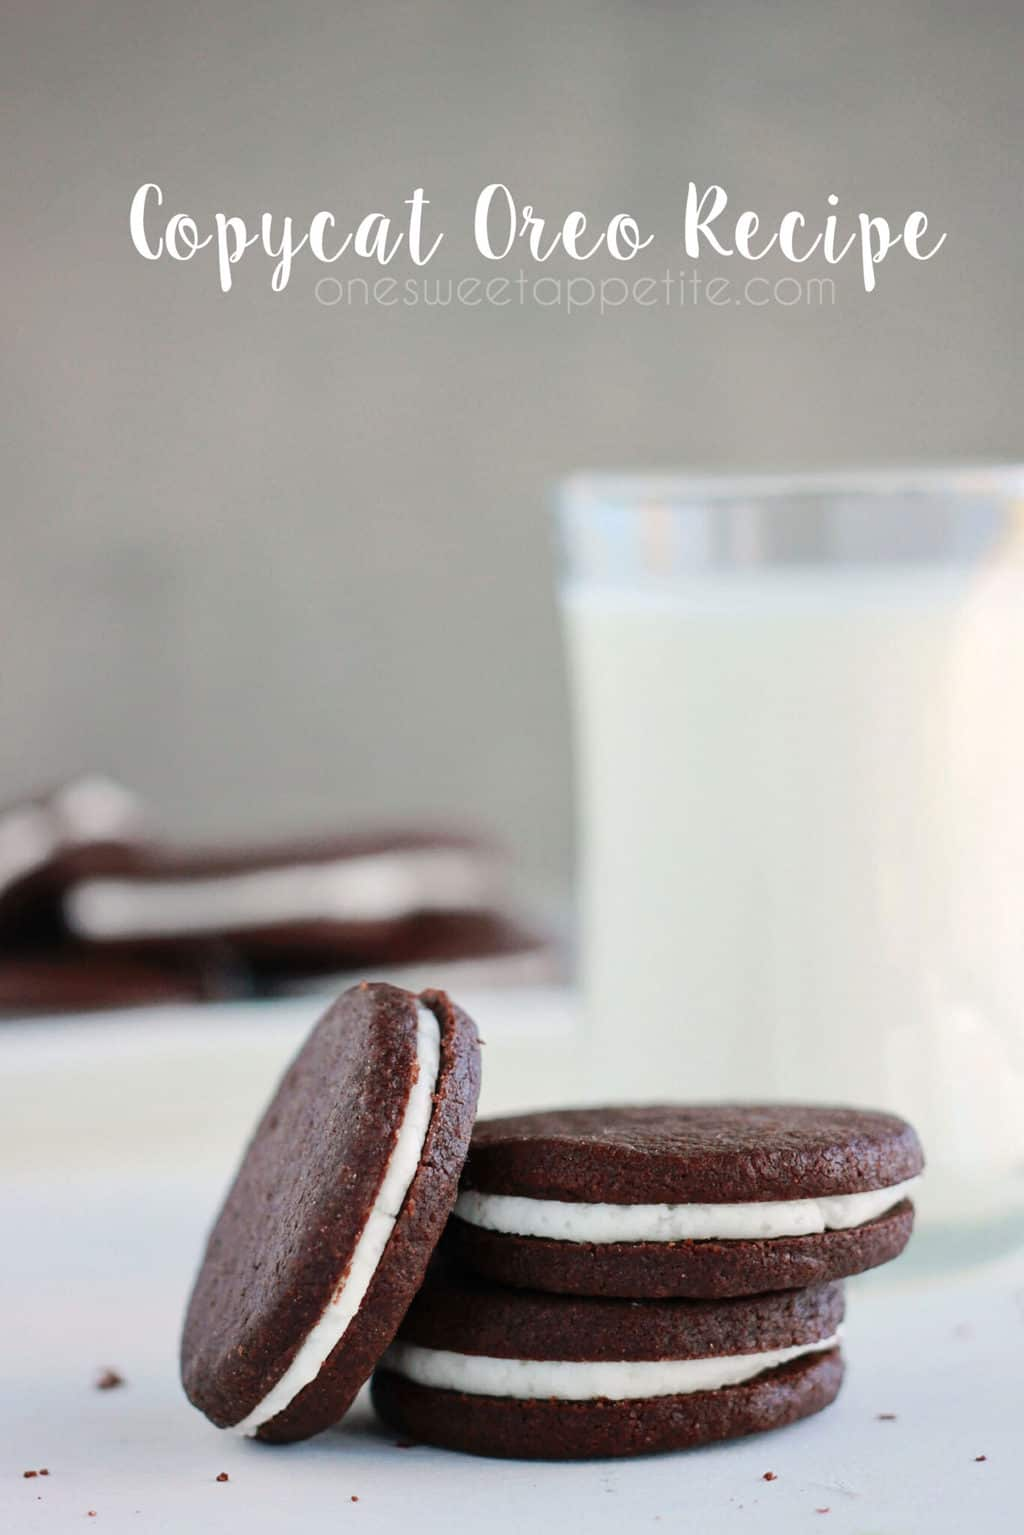 Copycat Oreo Recipe